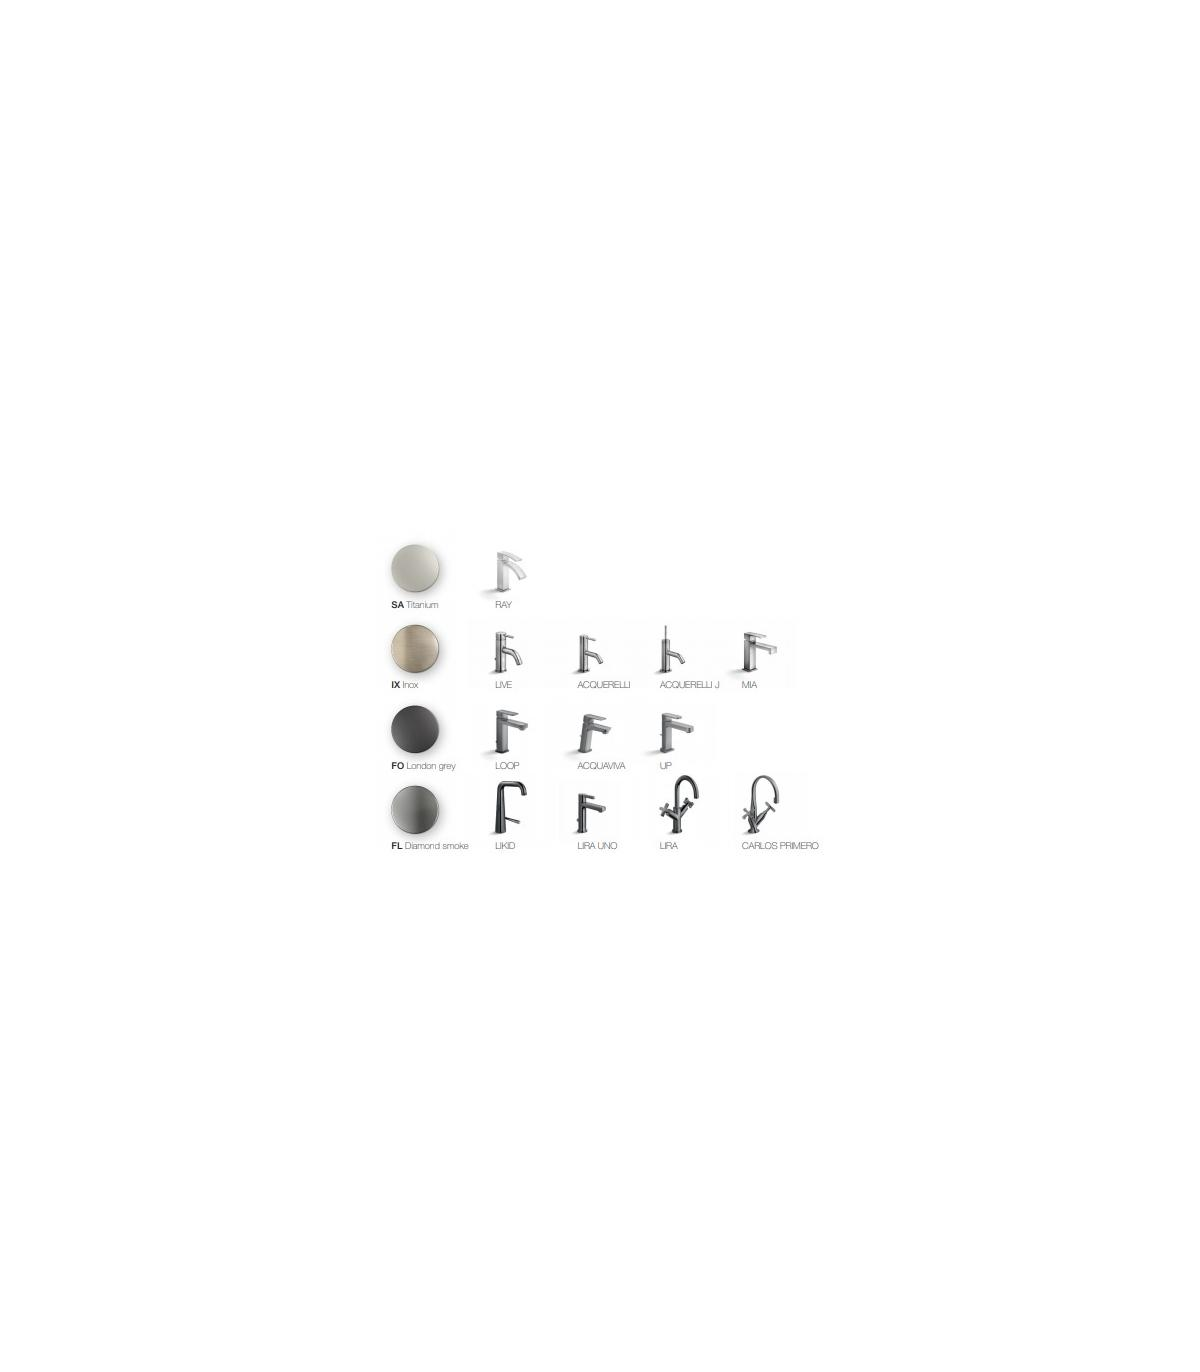 Toilet Suspended Ideal Standard Tesi Series T3546 Art Ceramic White Finish Aquablade Technology No Rim Including Seat With